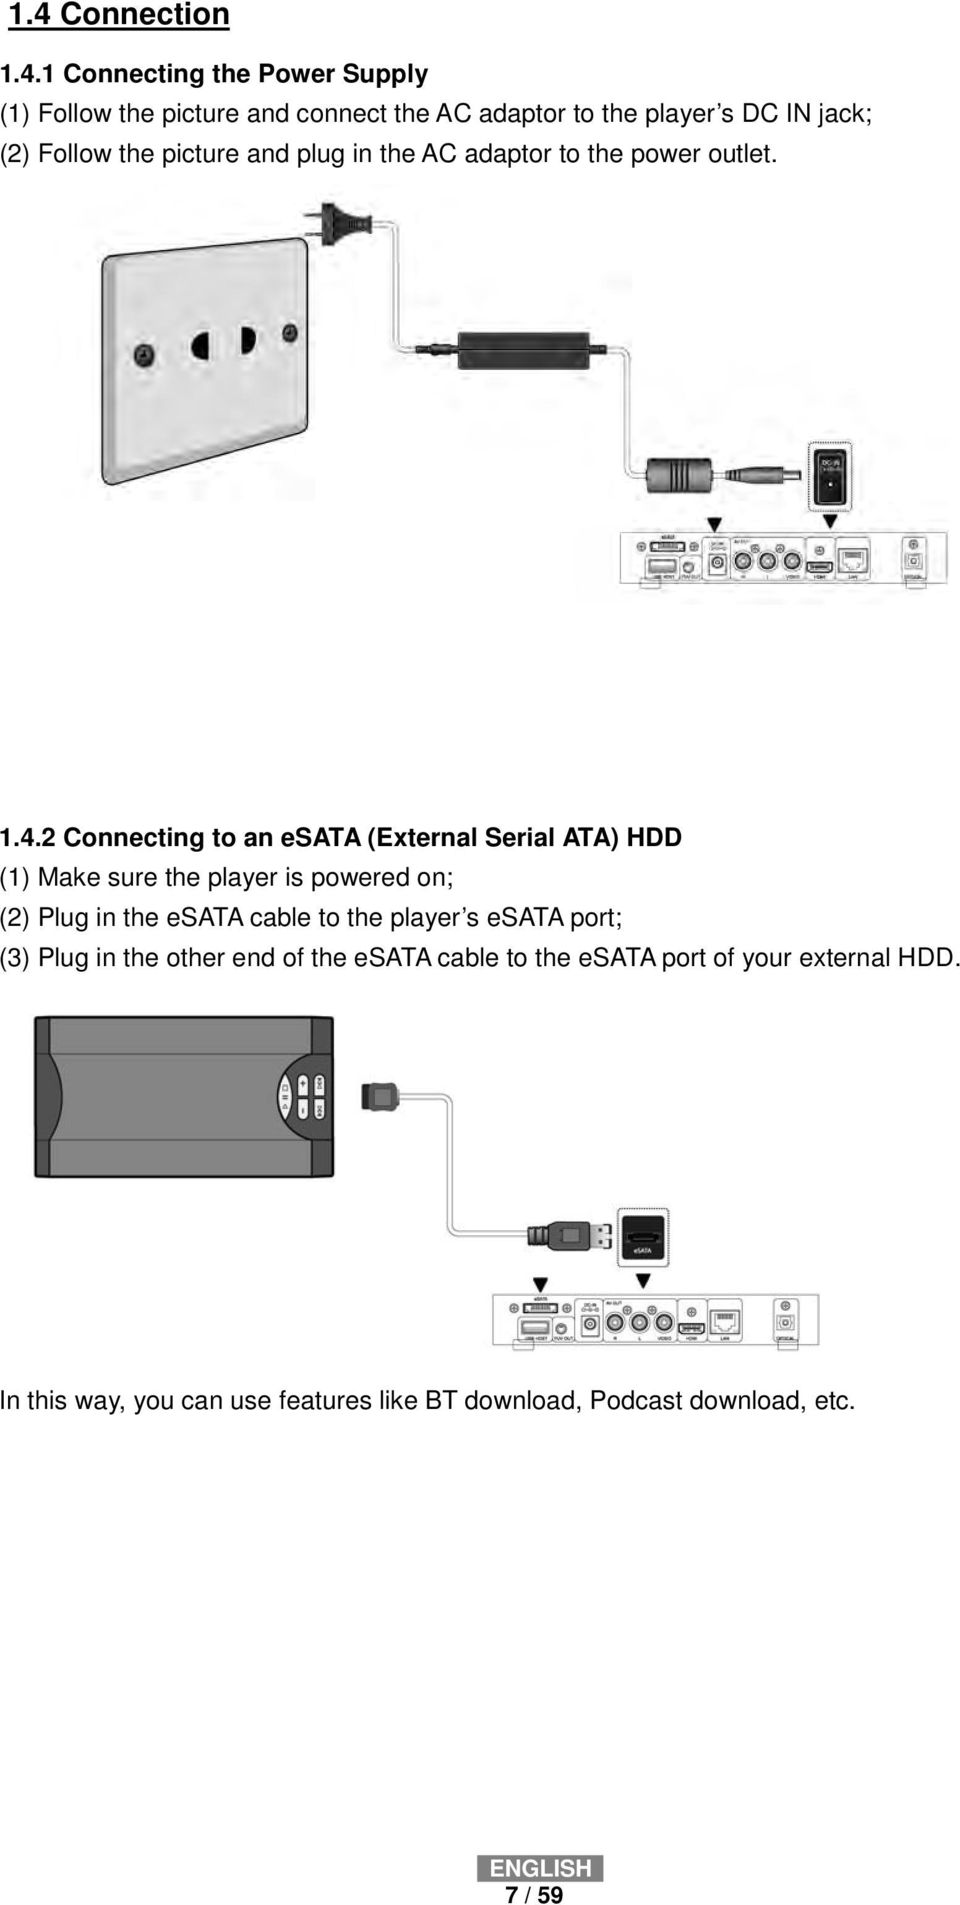 2 Connecting to an esata (External Serial ATA) HDD (1) Make sure the player is powered on; (2) Plug in the esata cable to the